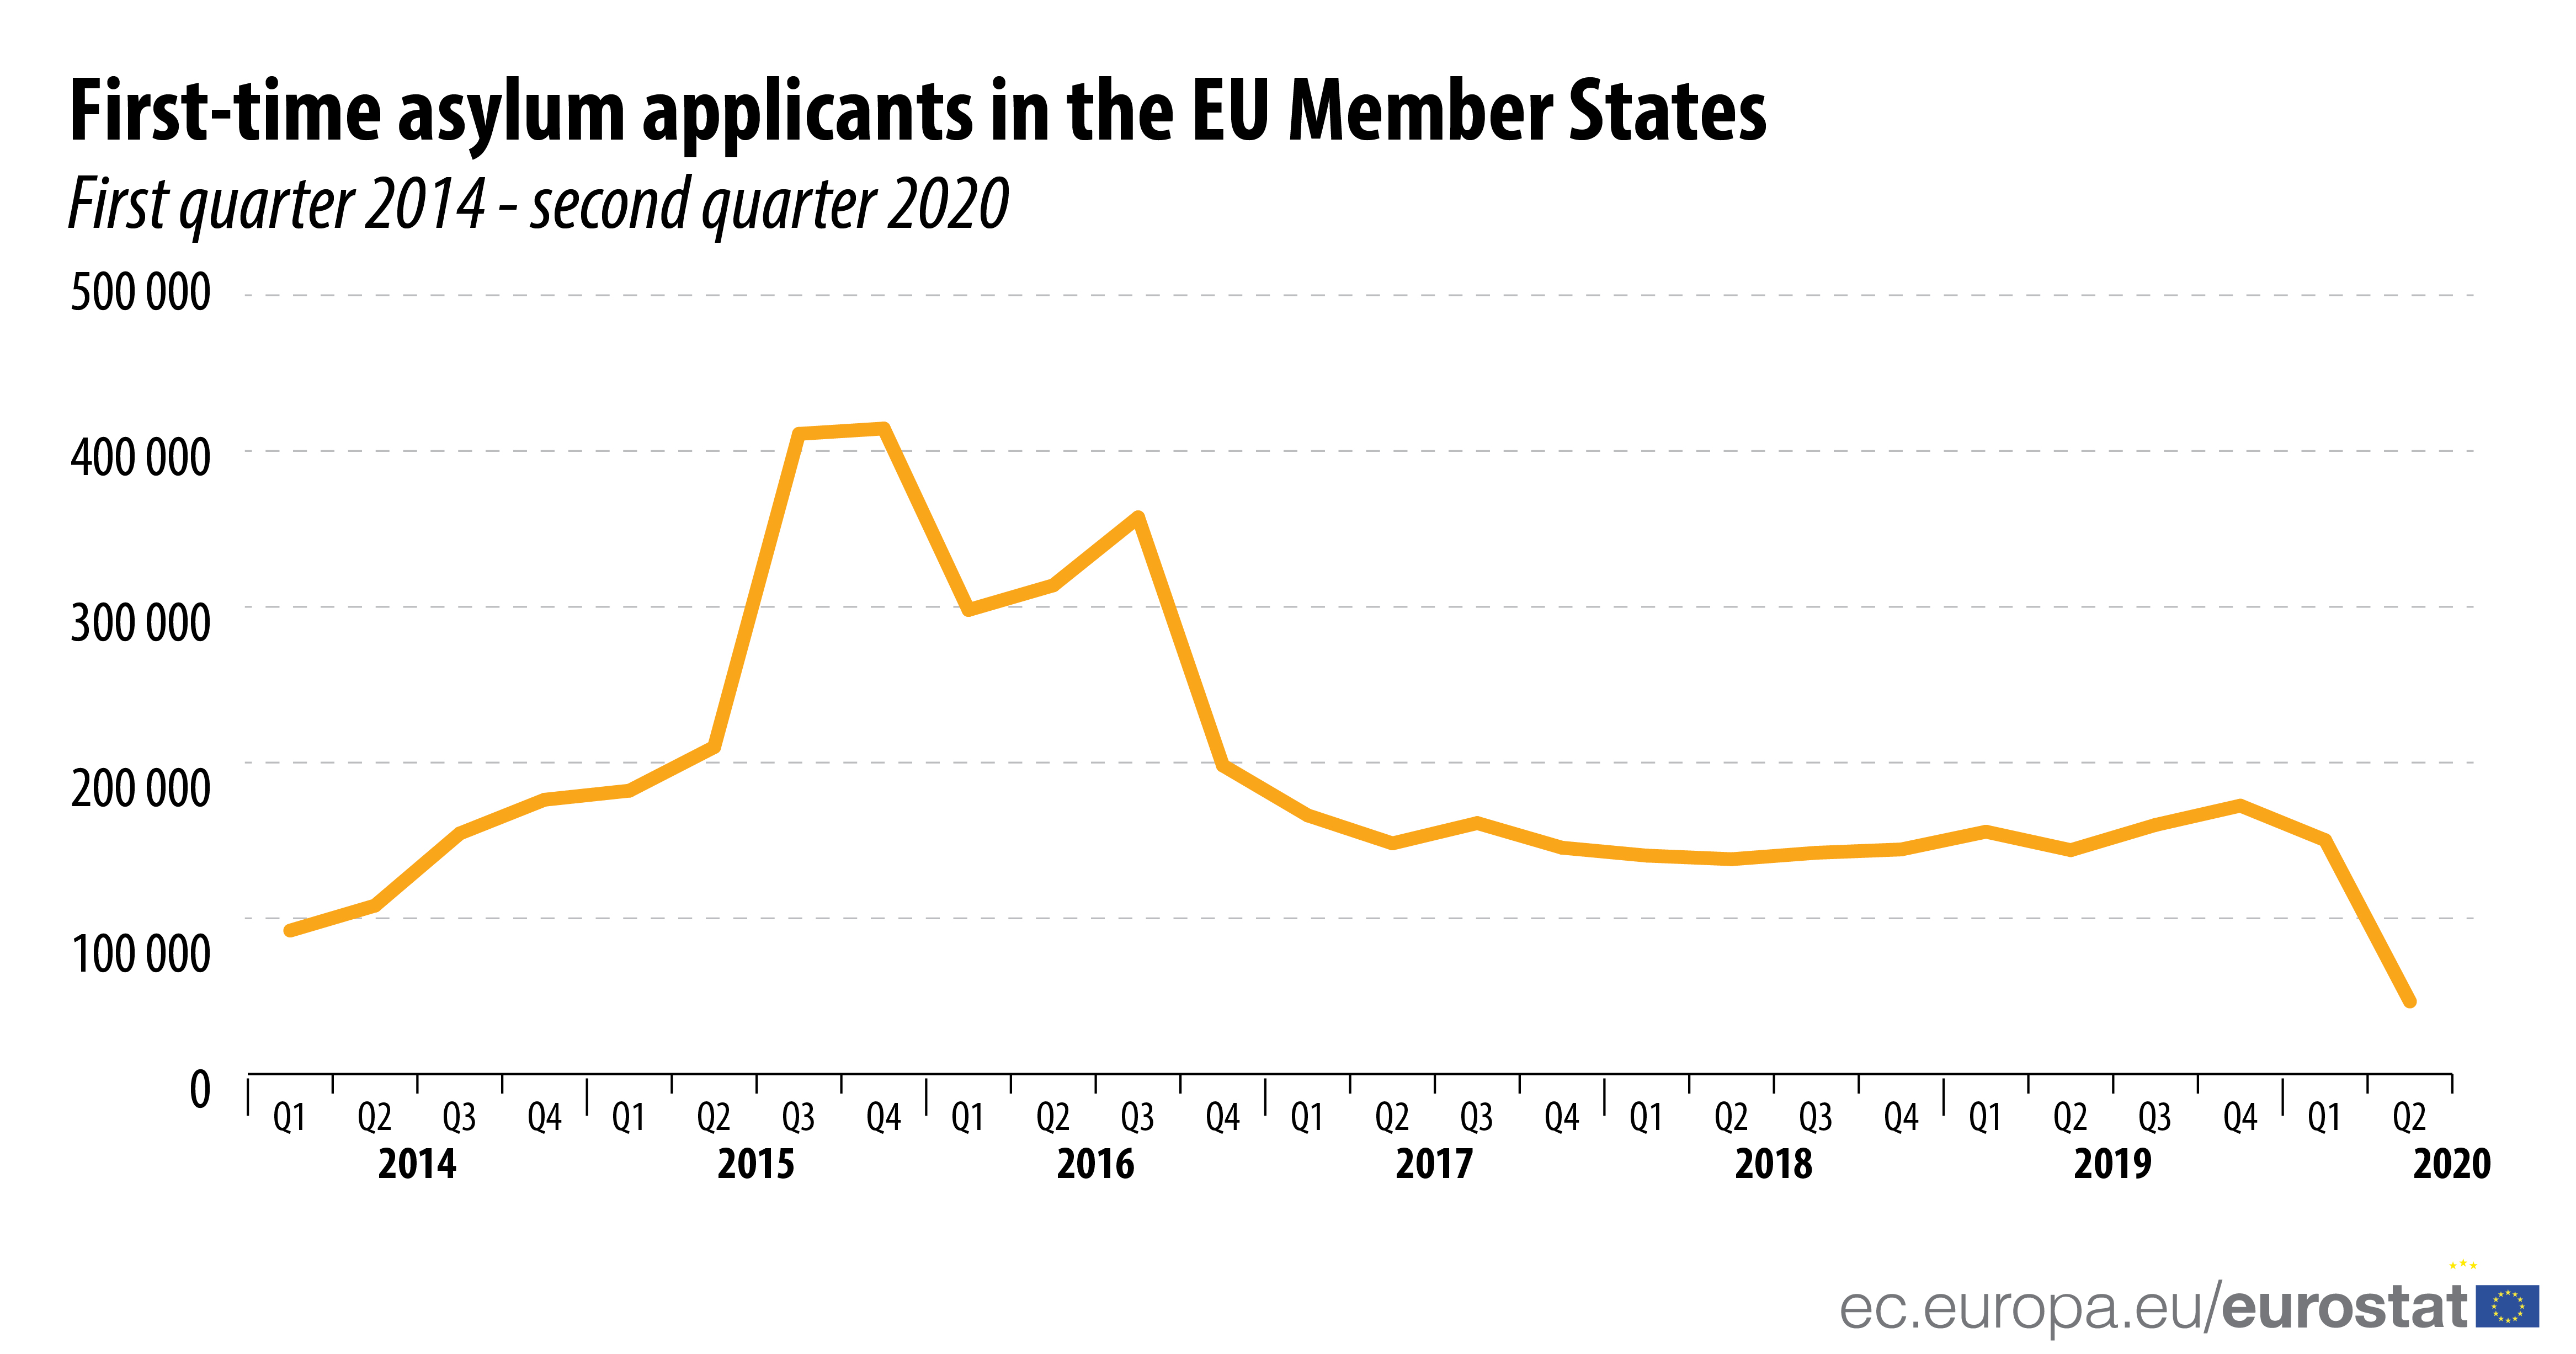 First-time asylum applicants in the EU Member States, 2014 2020